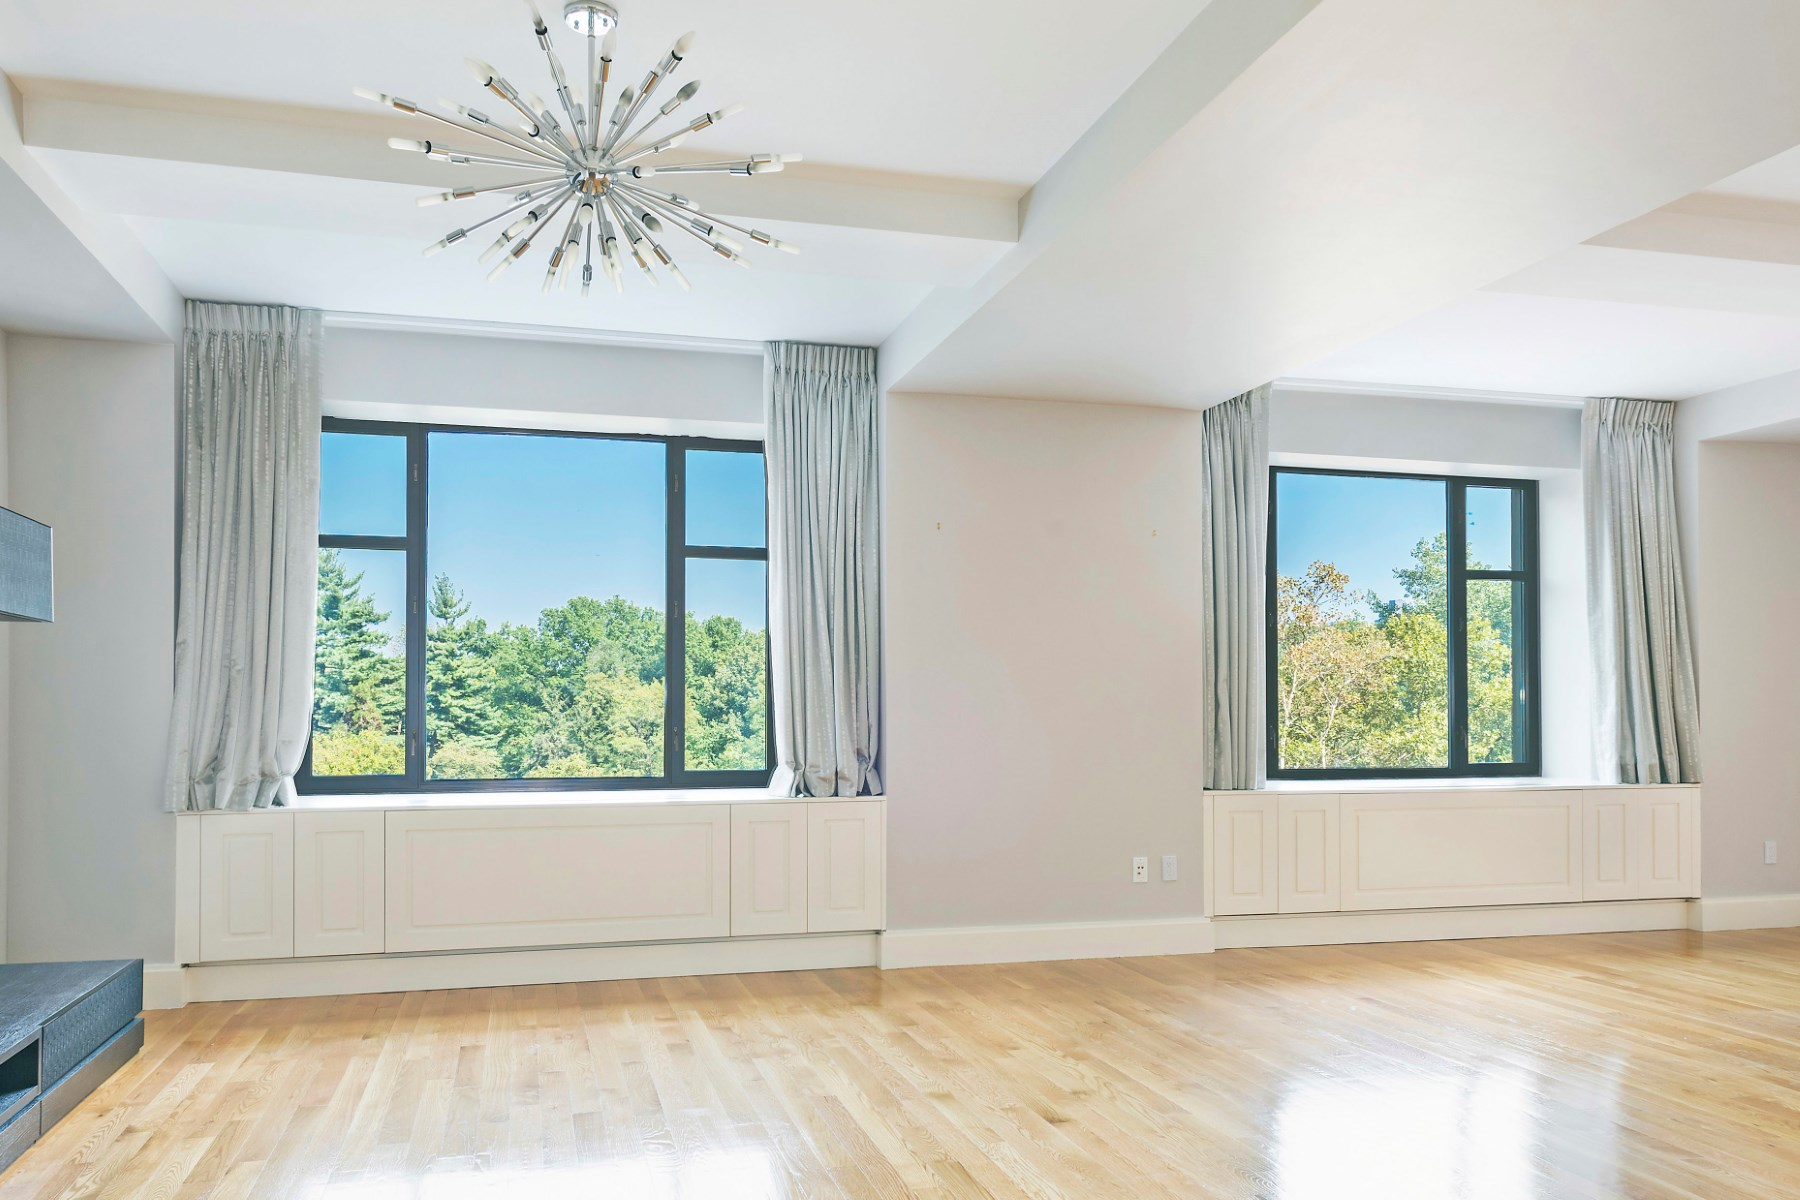 Co-op for Rent at 110 Central Park South, Apt 5B 110 Central Park South Apt 5b New York, New York 10019 United States